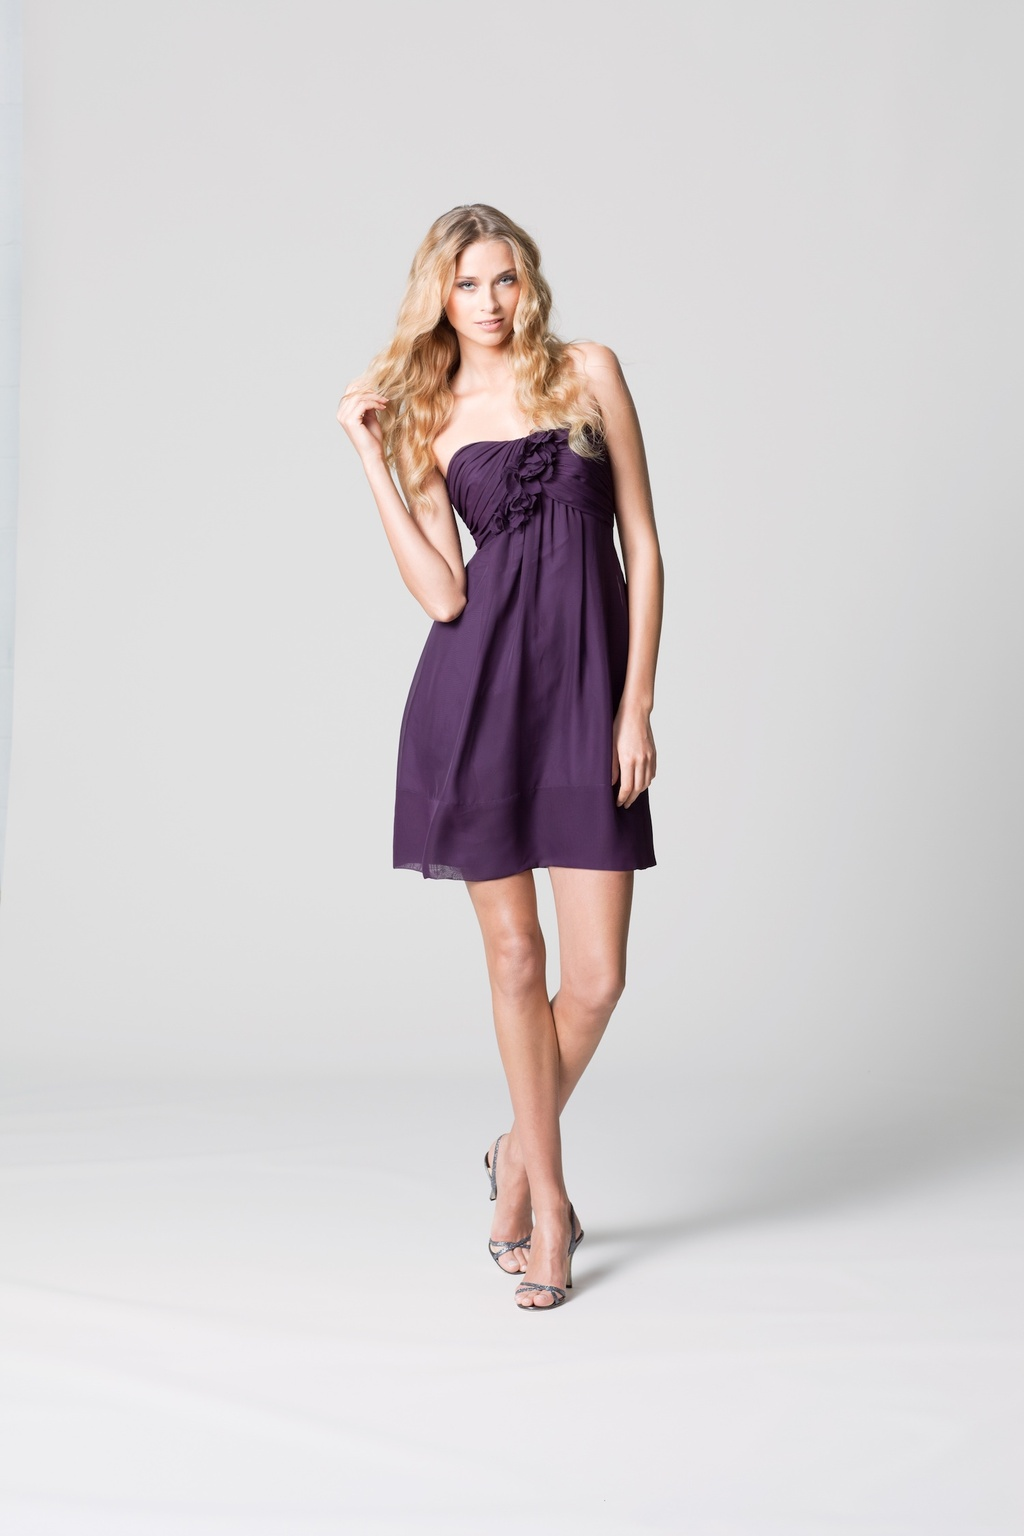 Affordable-bridesmaids-dresses-fall-2012-wtoo-by-watters-bridal-party-deep-wine-babydoll.full